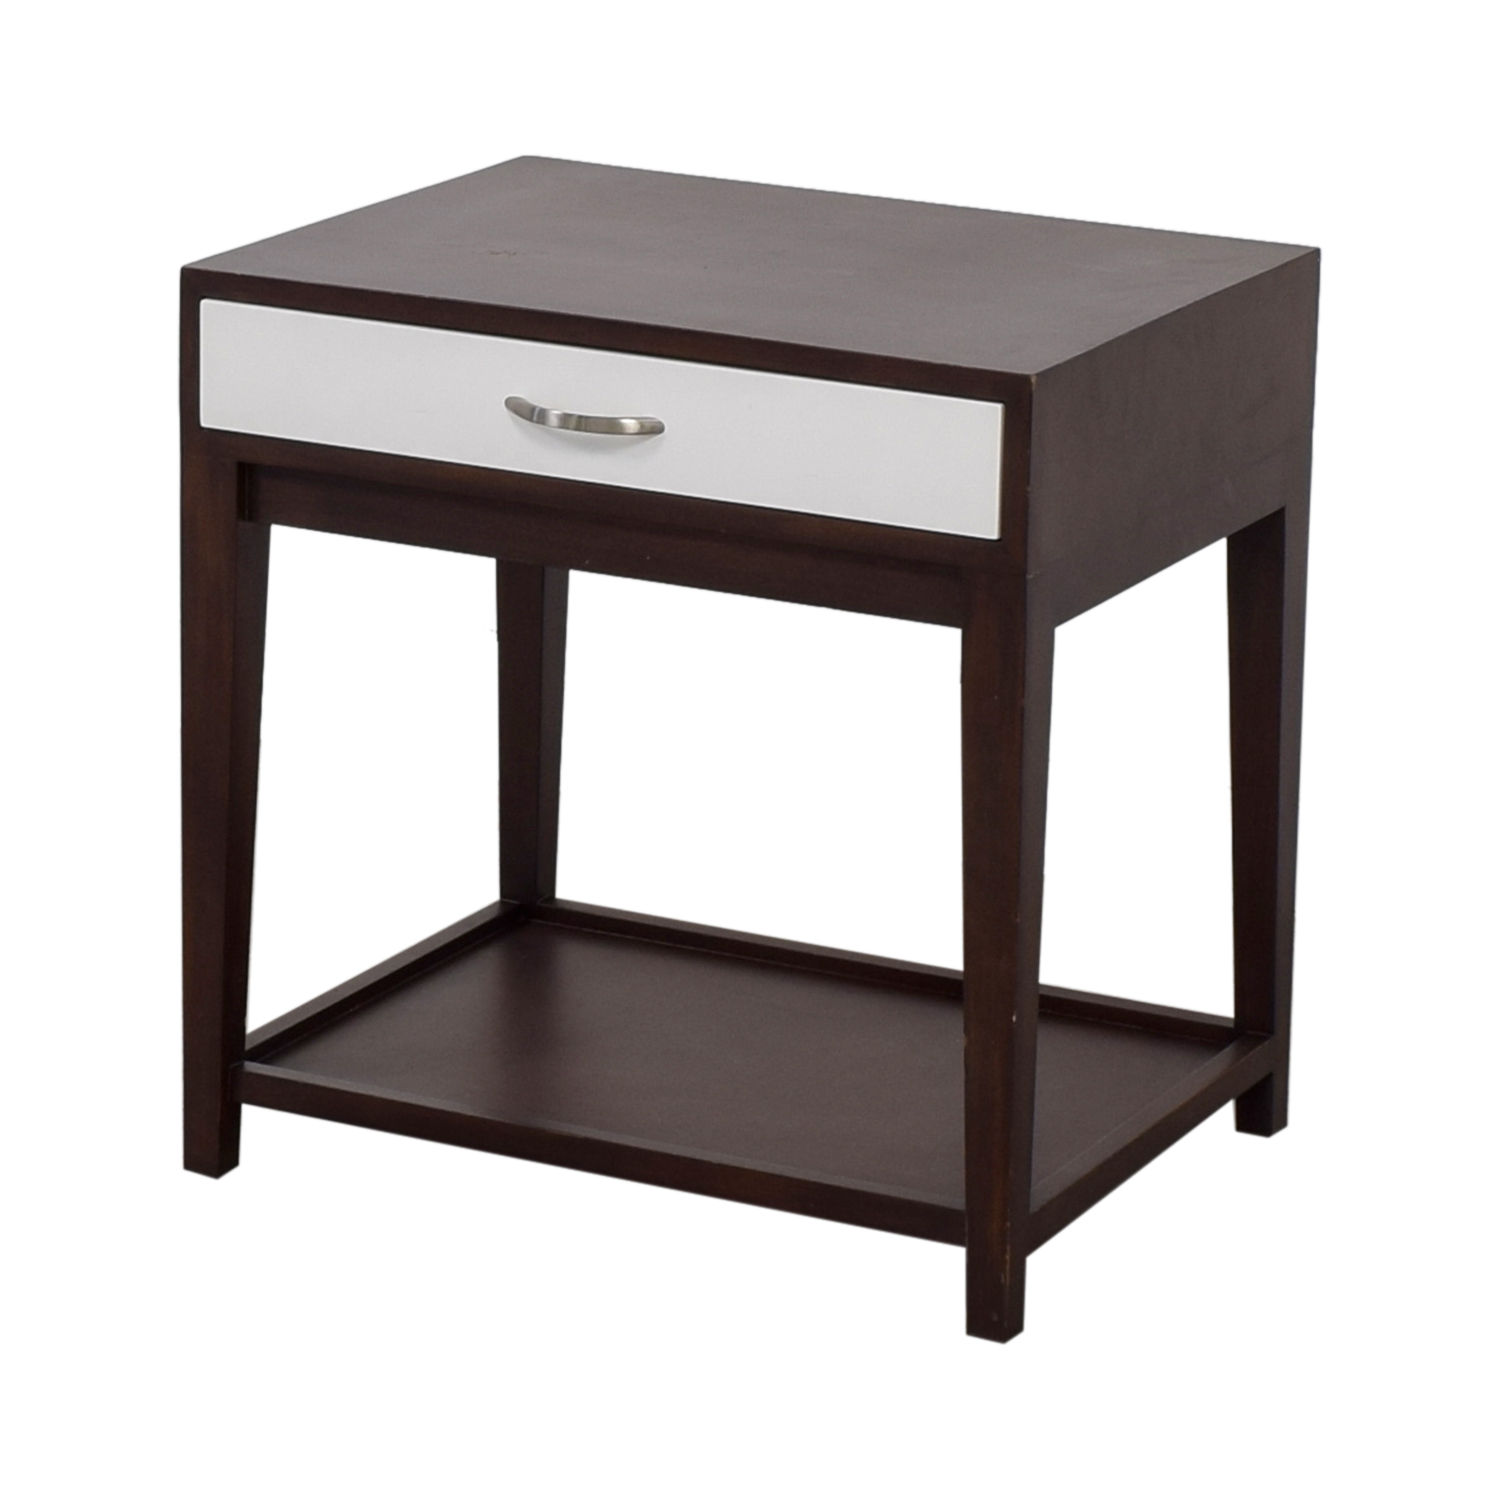 buy Buccola Brown and White Nightstand Buccola End Tables